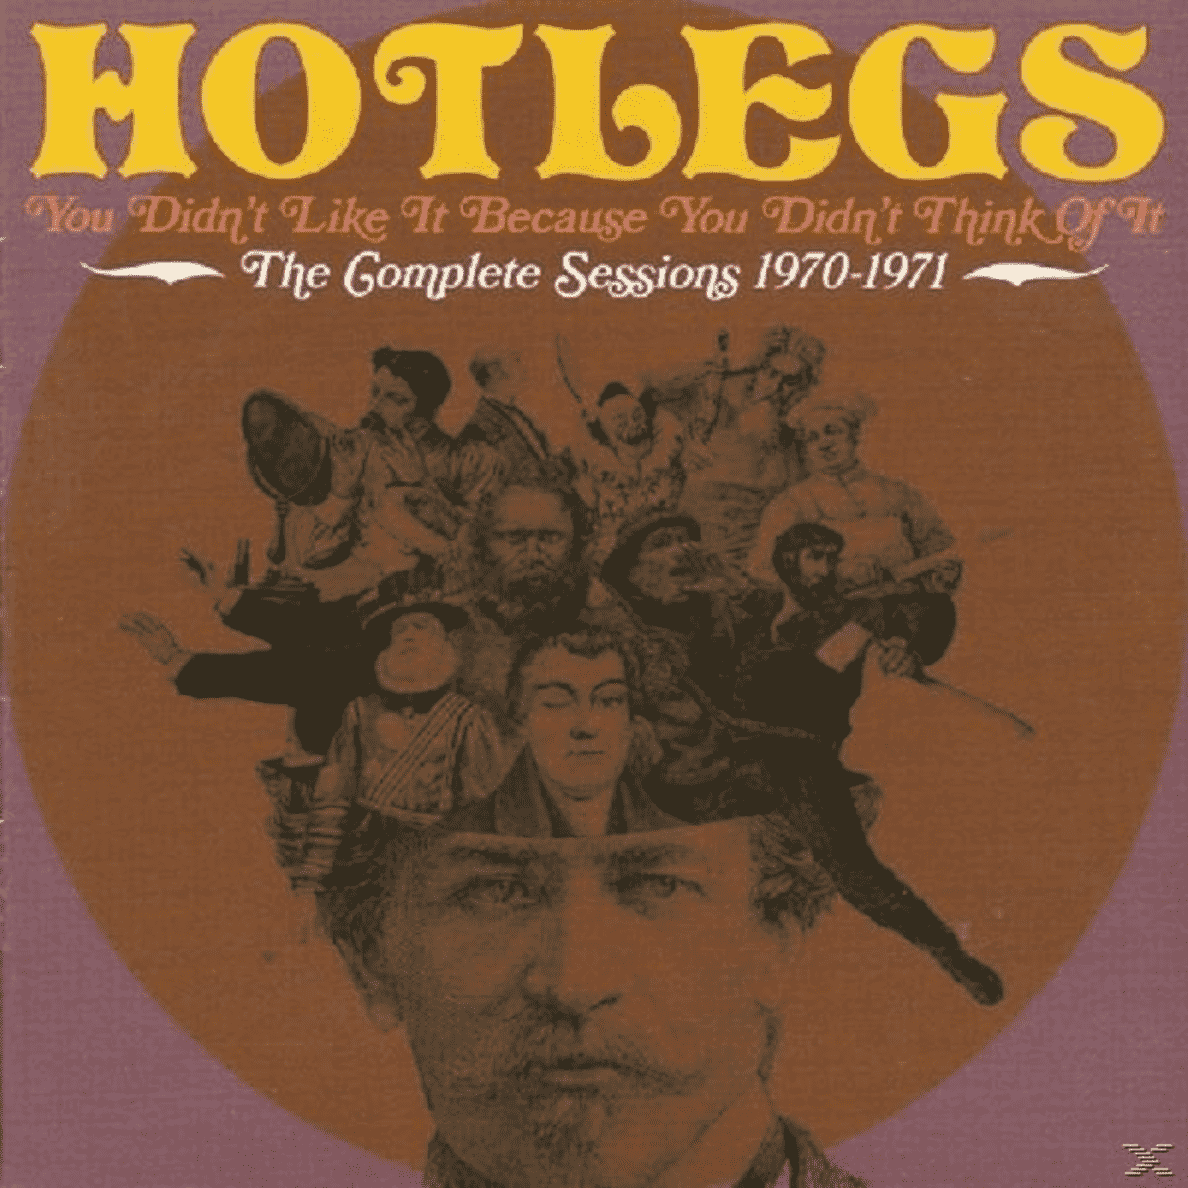 You Didn´t Like It Because You Didn´t Think Of It: The Complete Sessions 1970-1971 Hotlegs auf CD